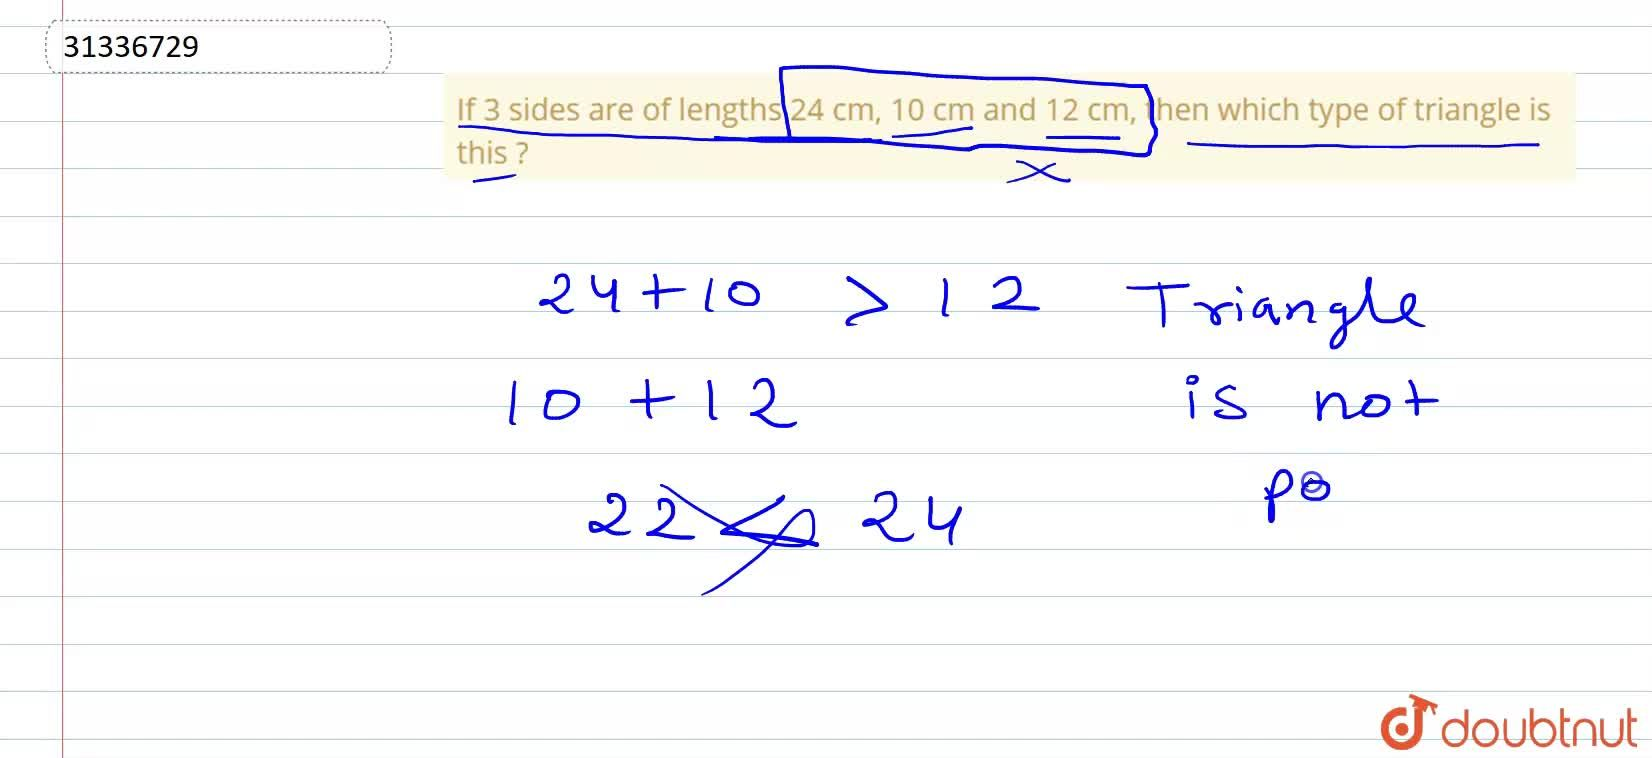 Solution for If 3 sides are of lengths 24 cm, 10 cm and 12 cm,